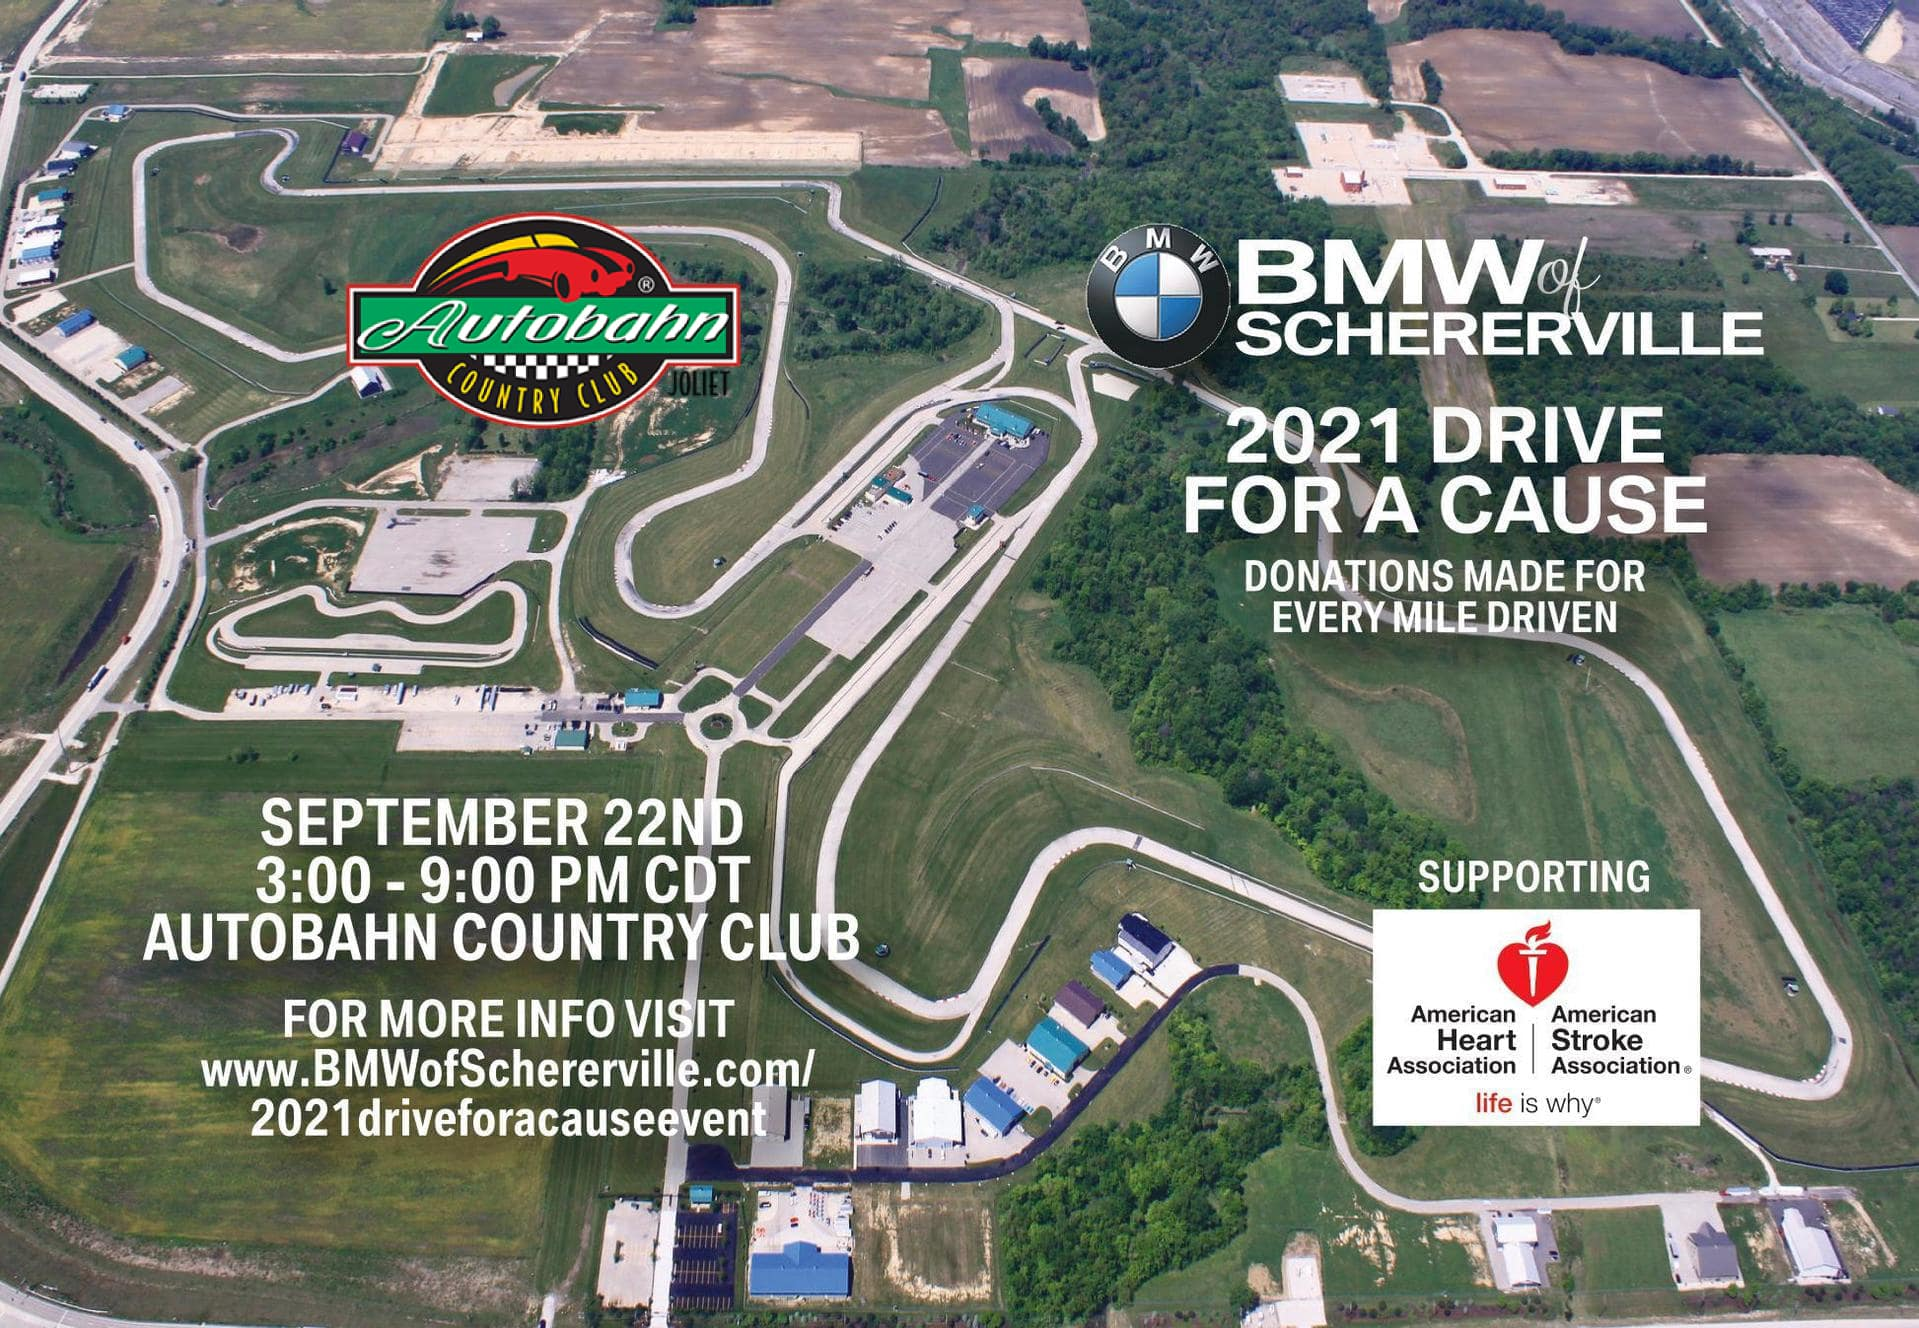 Drive for a Cause Event